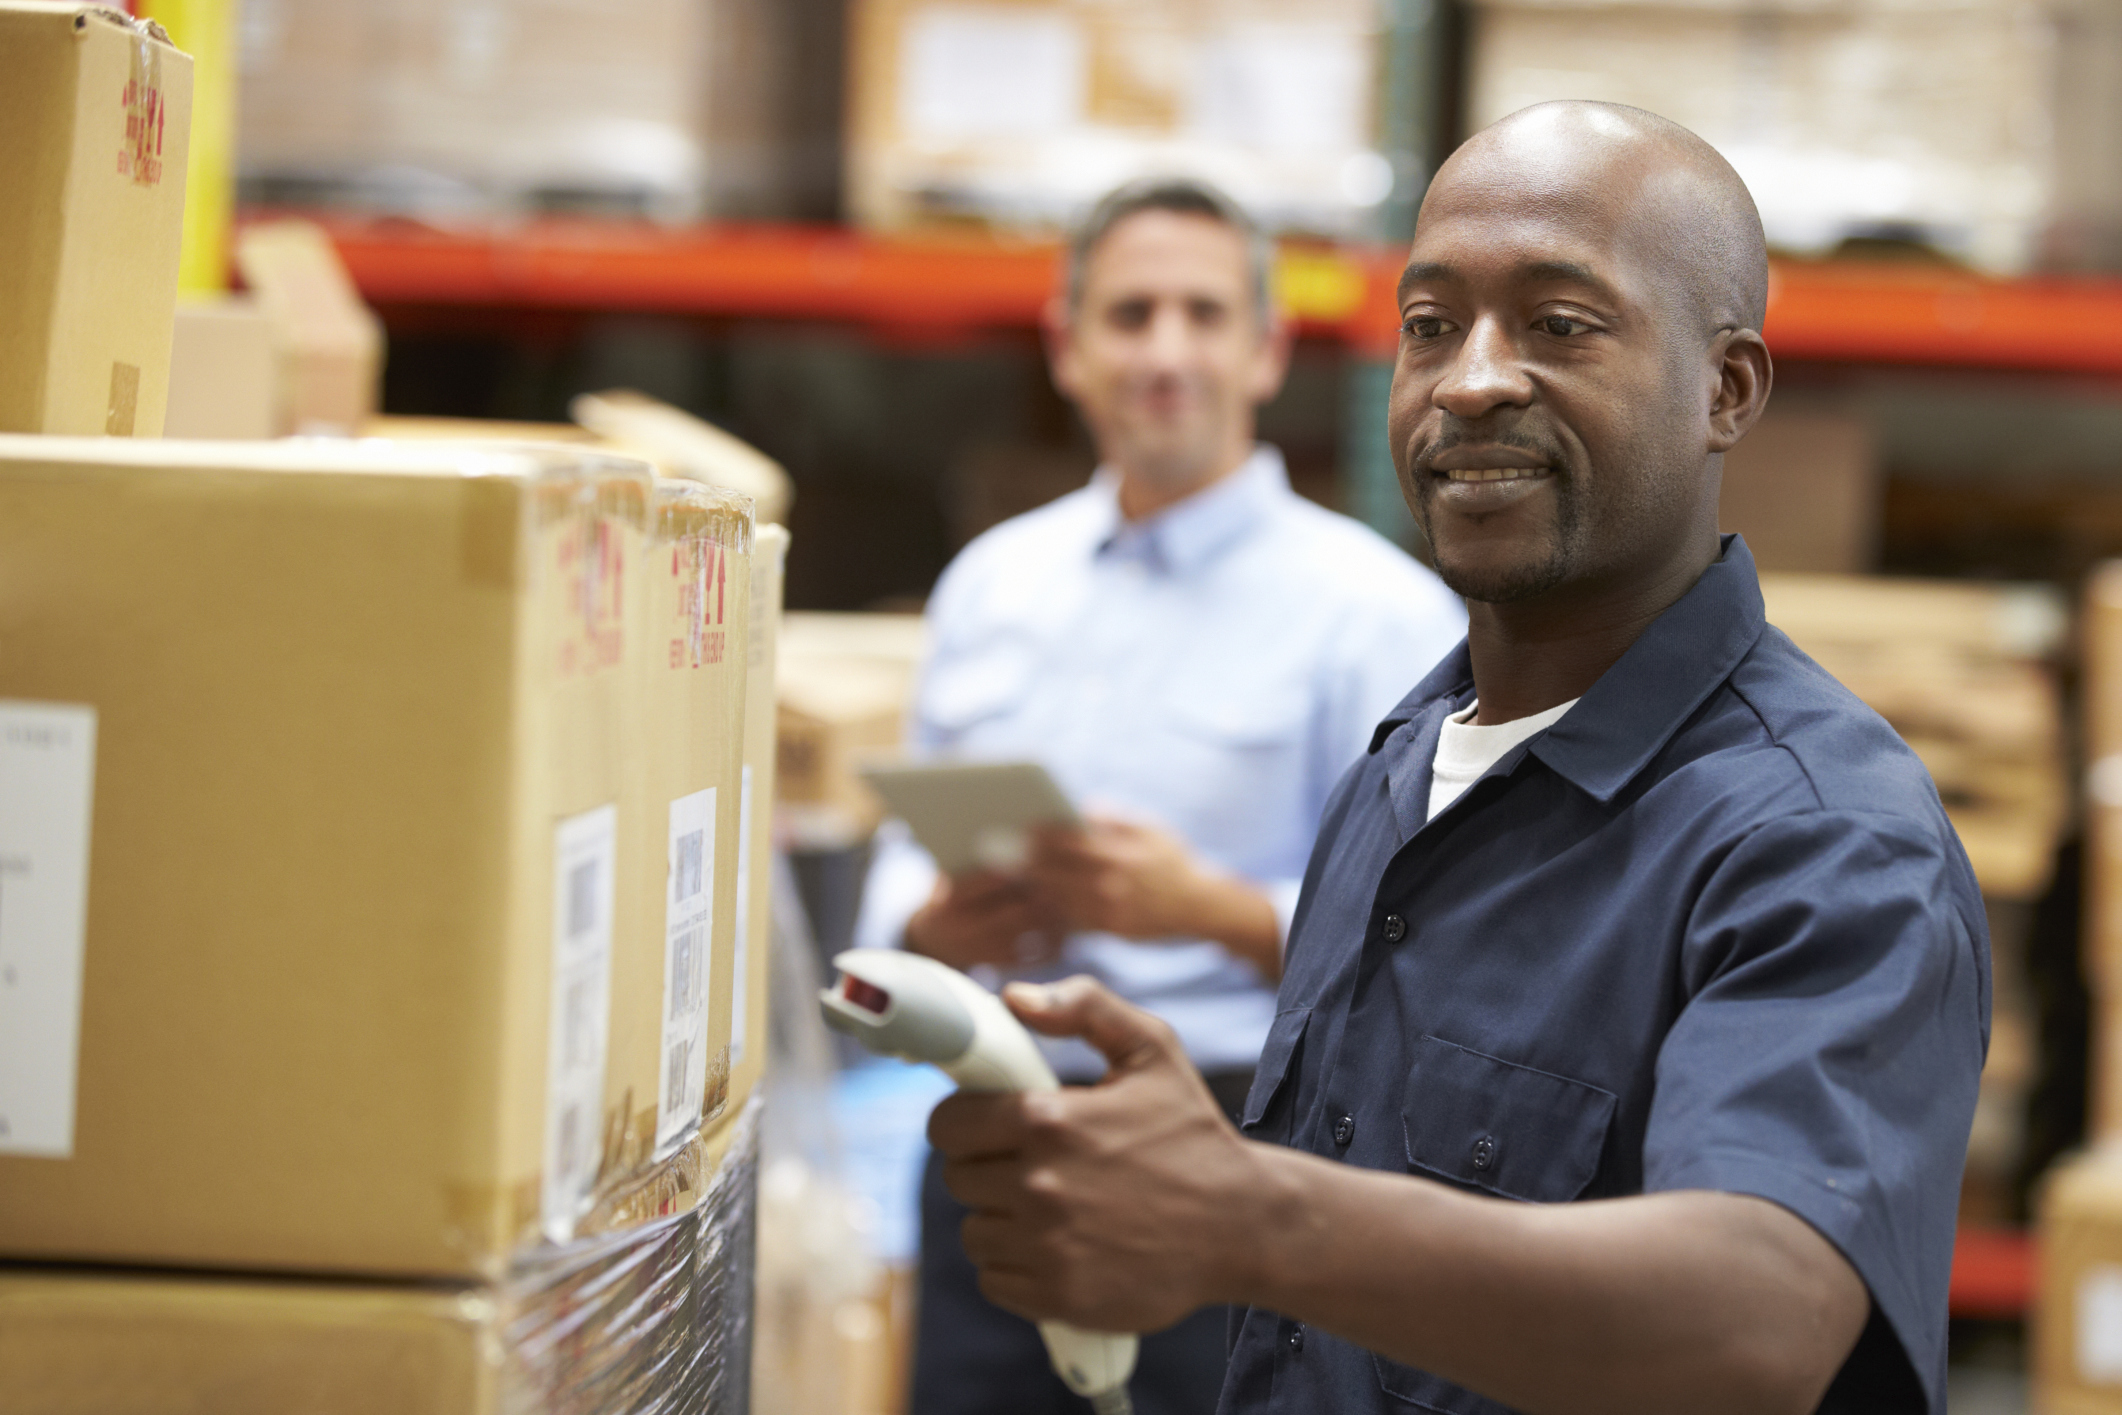 How Much Do Warehouse Workers Make?